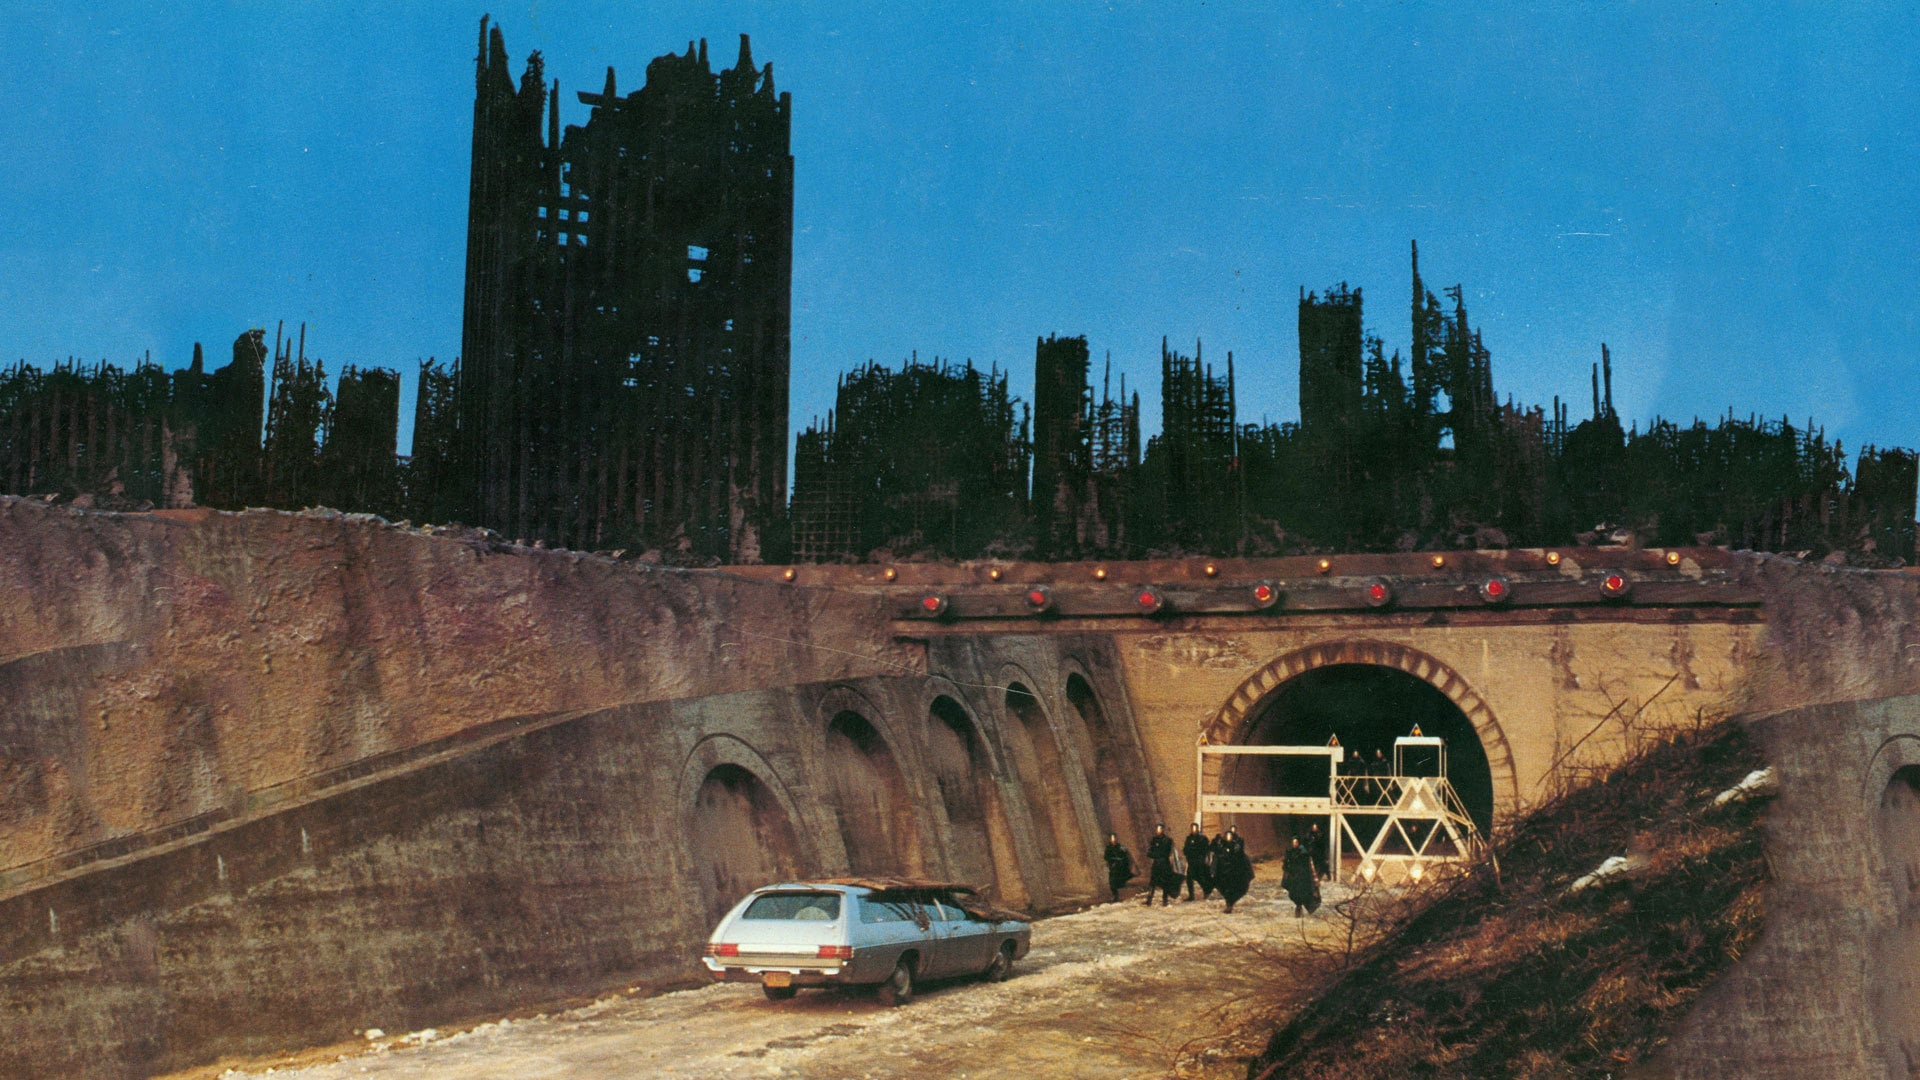 The ruins of New York City in 2019: After the Fall of New York (1983)